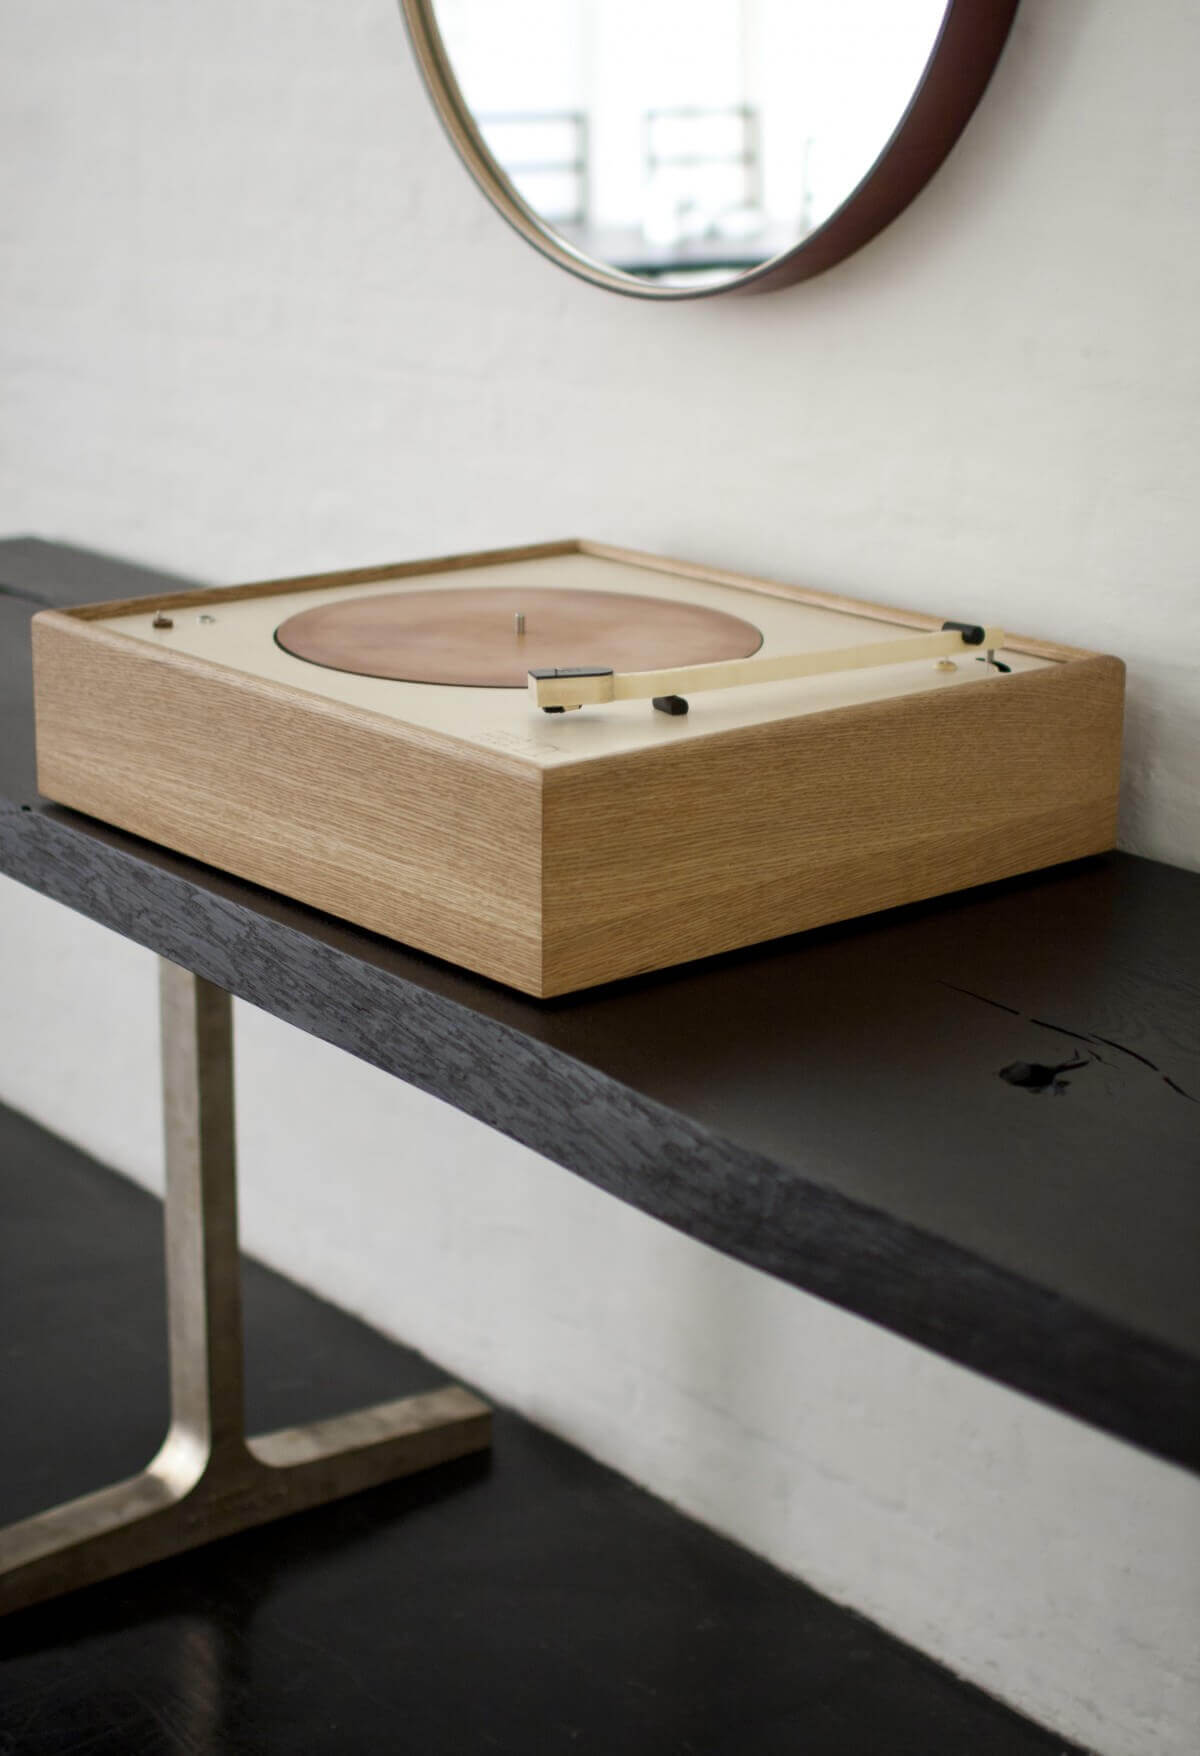 BDDW wooden turntable